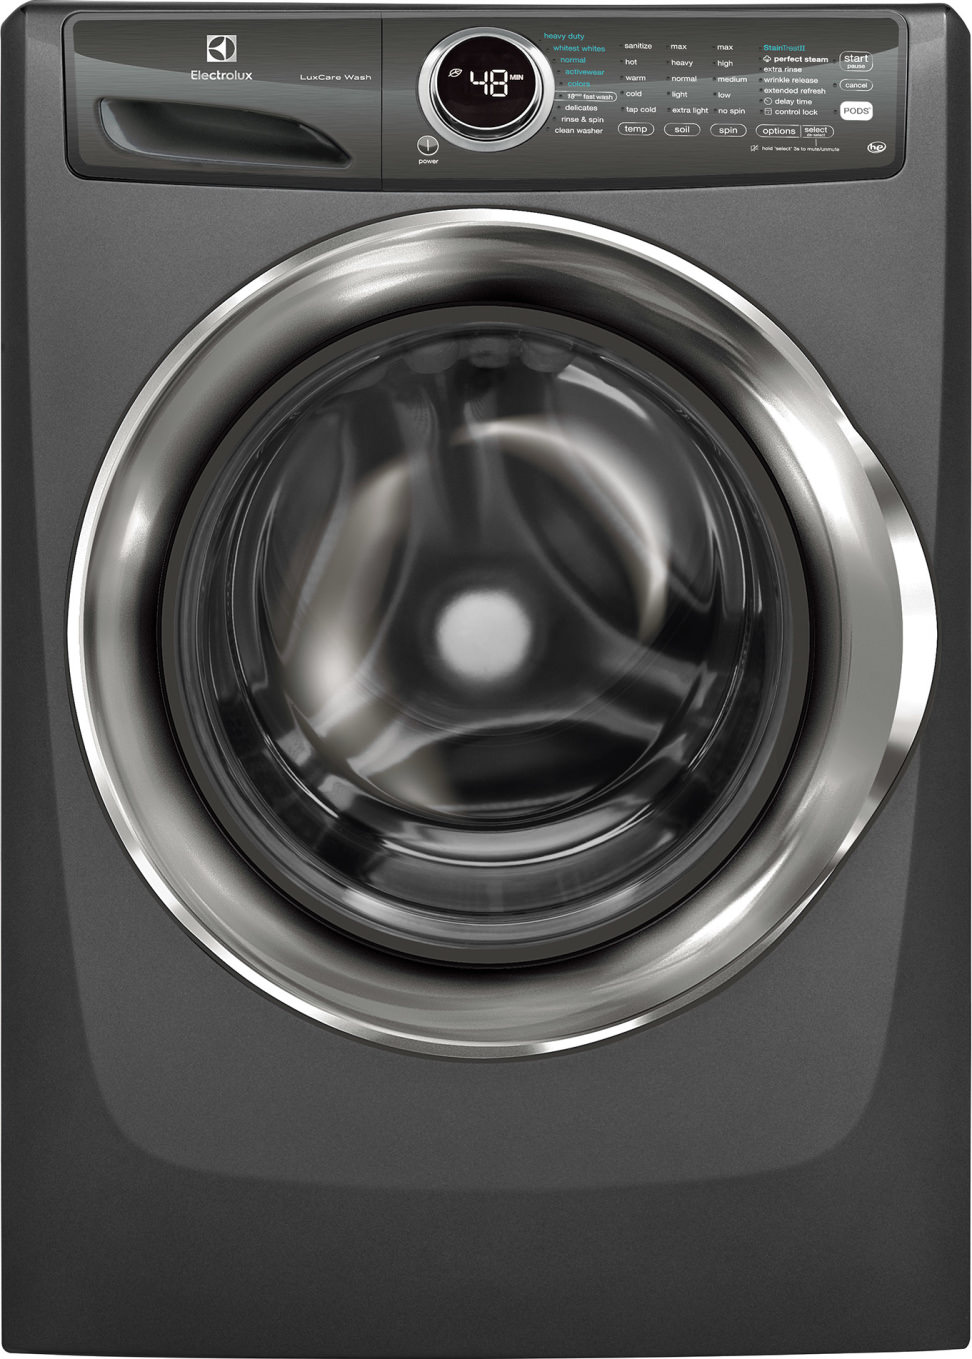 Electrolux-627-with adaptive-dispenser